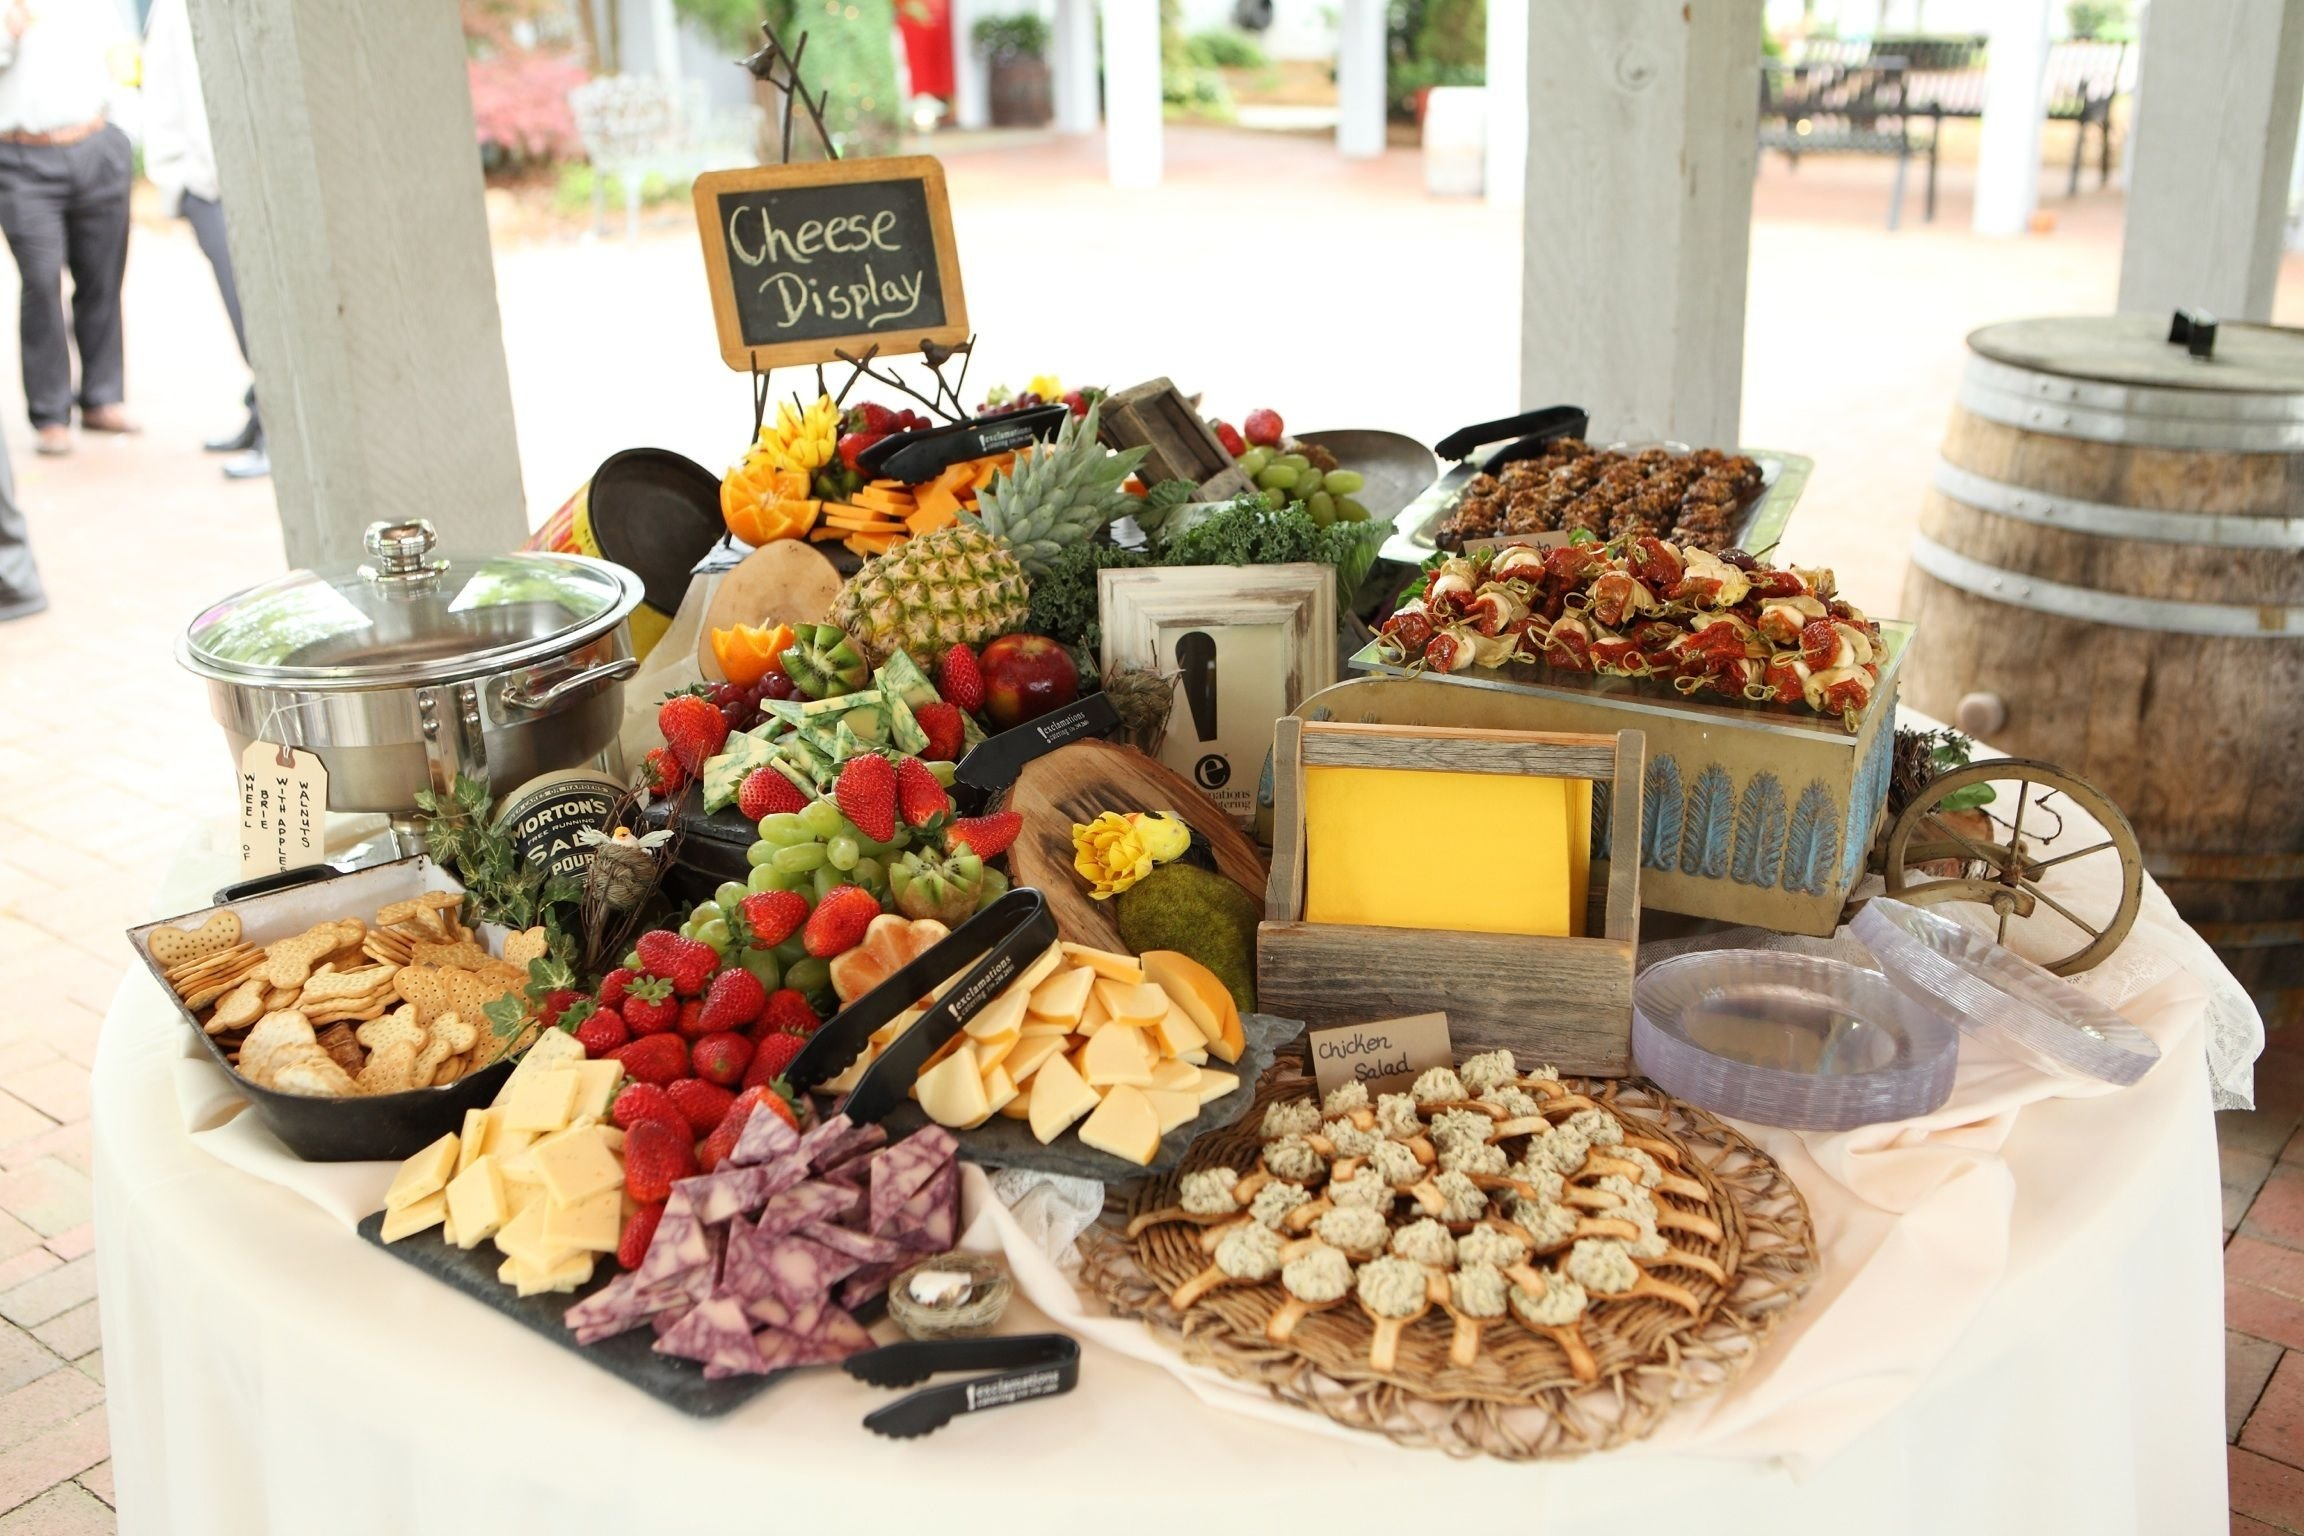 10 Fantastic Wedding Reception Food Menu Ideas perfect display of cheese crackers fruit finger foods etc for a 2 2021